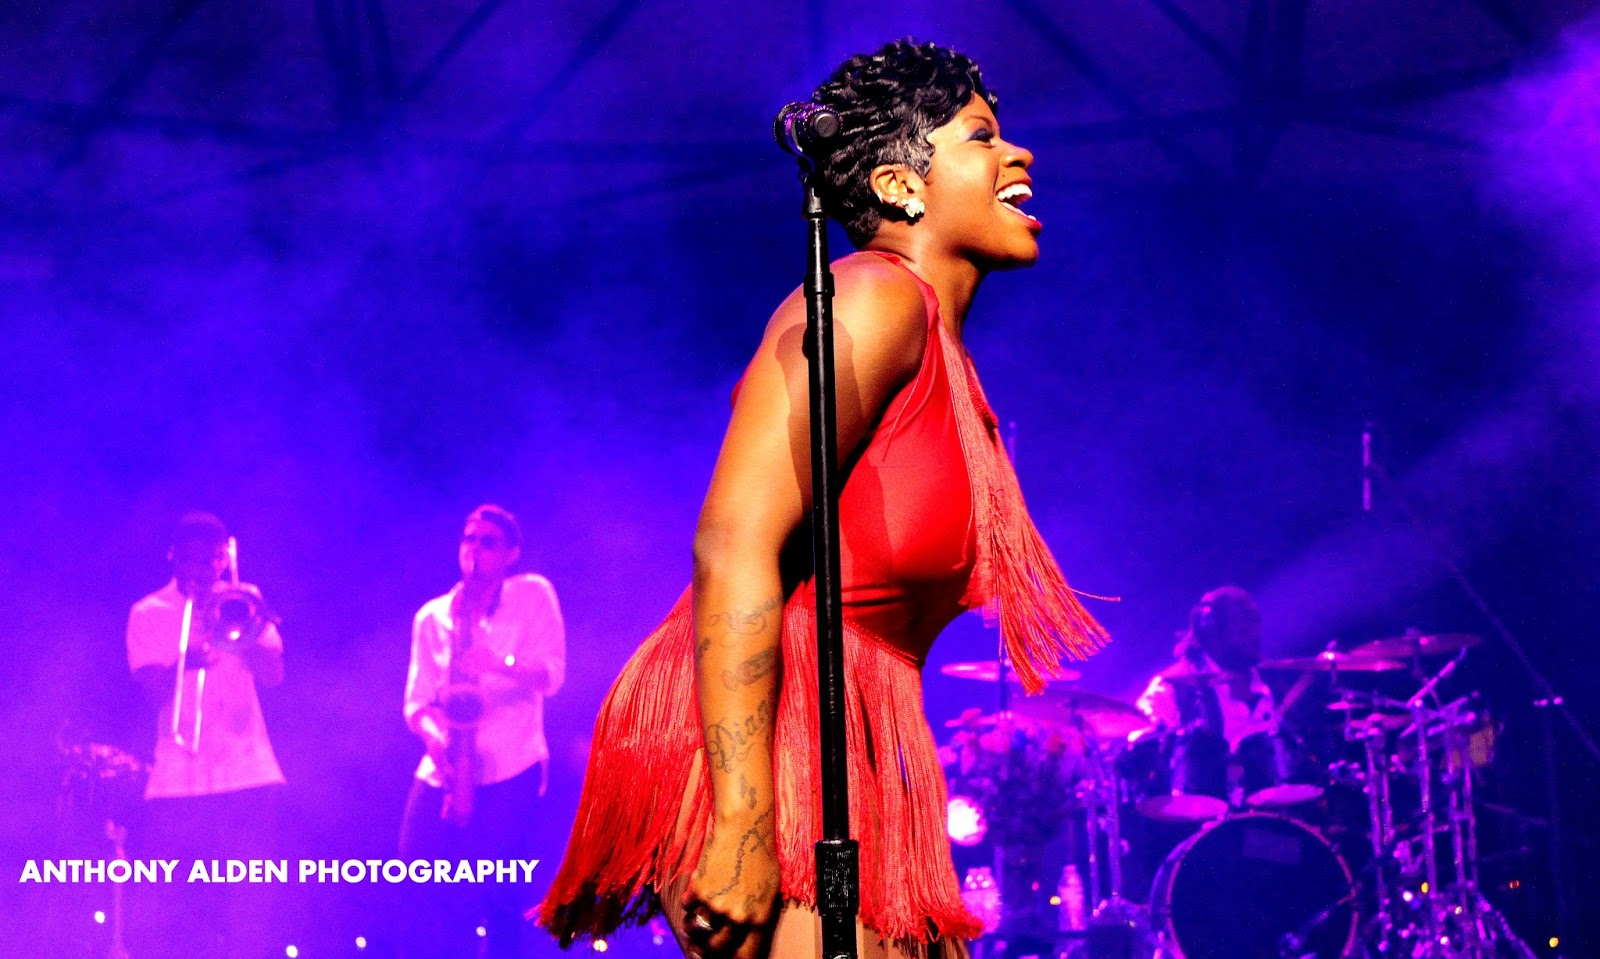 Fantasia Fantastic Photography By Anthony Alden X Urban Music Mag